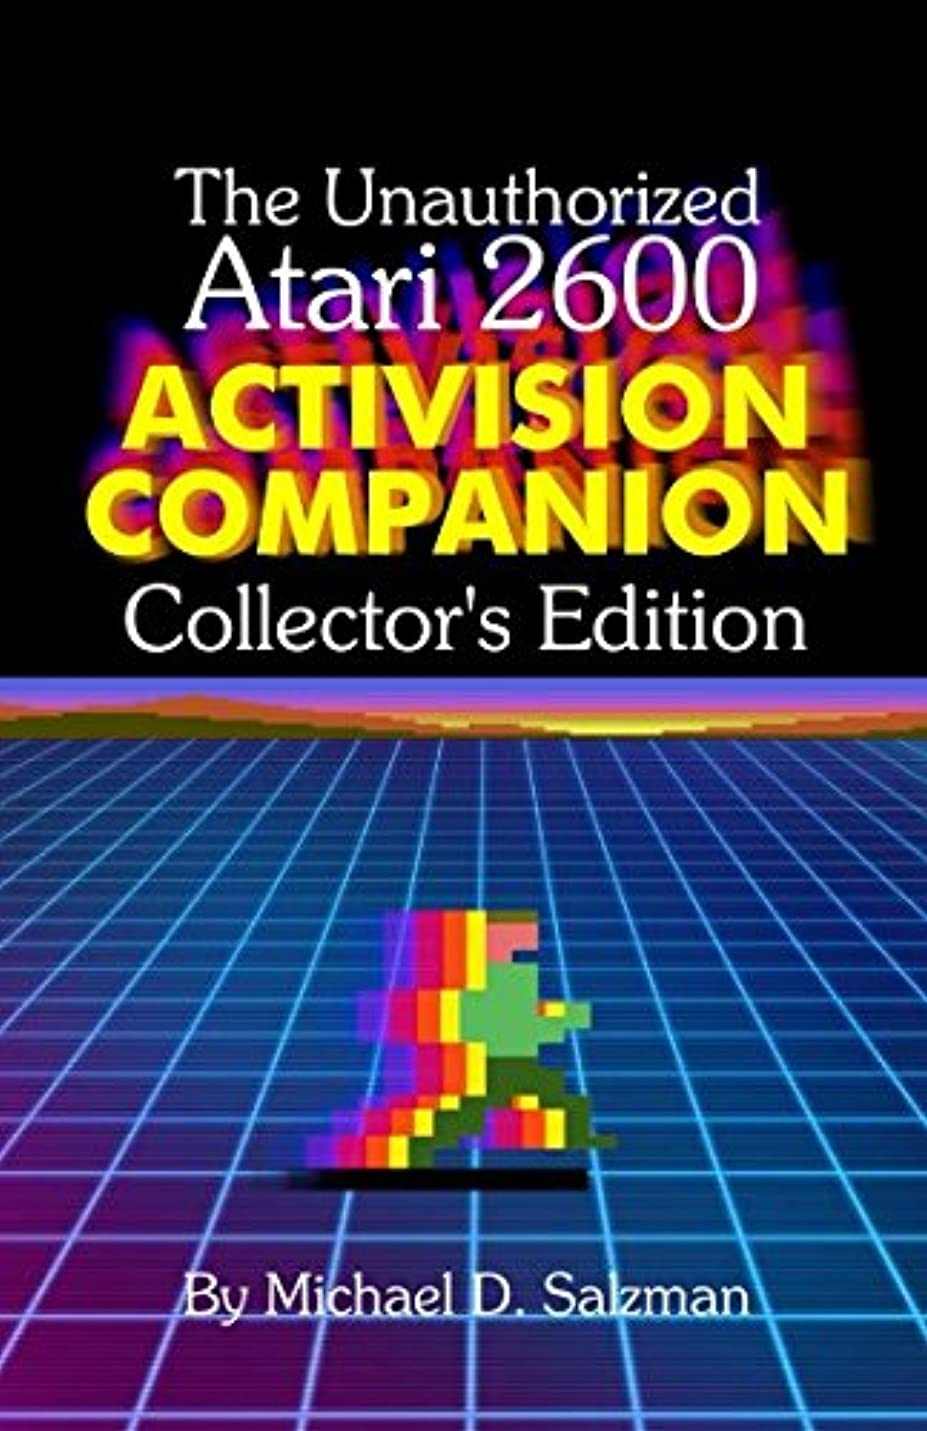 消化債務者要塞The Unauthorized Atari 2600 Activision Companion - Collector's Edition: All 44 Of Your Favorite Activision Games On The Atari 2600